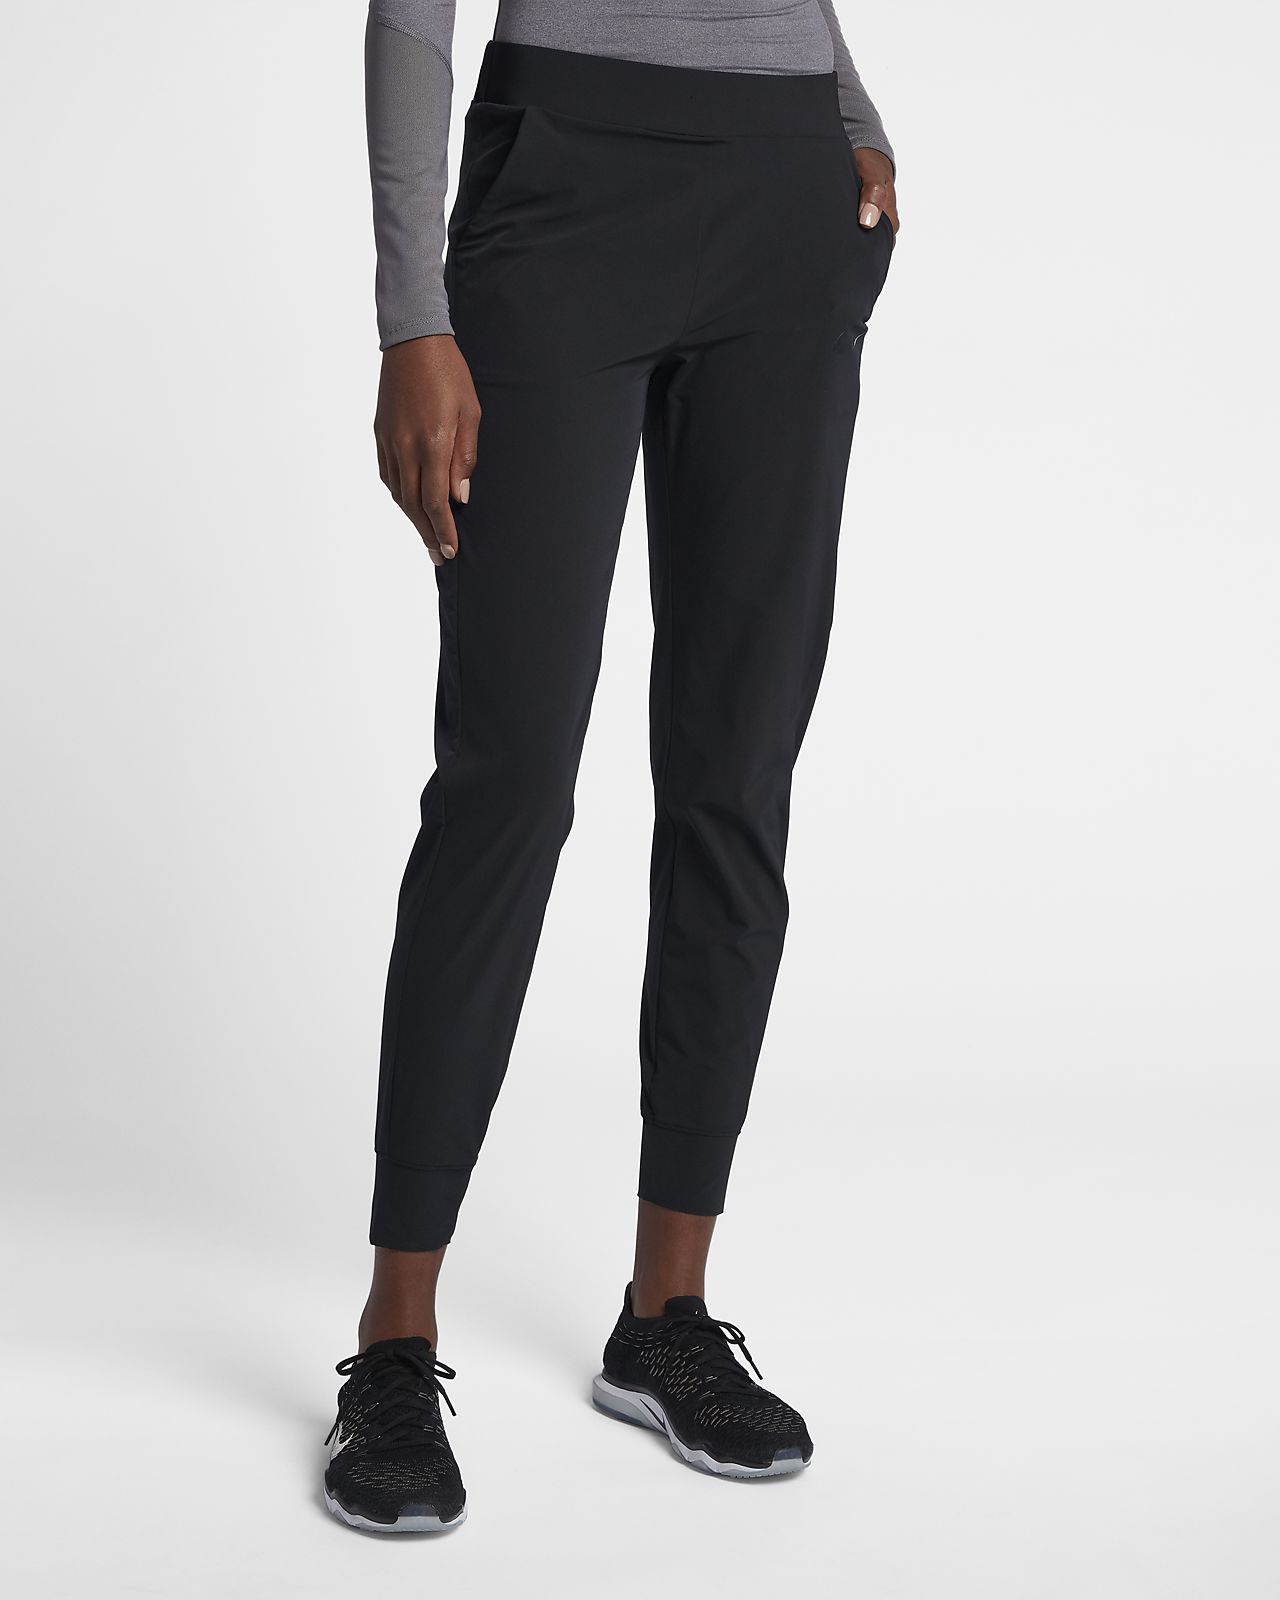 Nike Bliss Lux Women's Mid-Rise Training Trousers